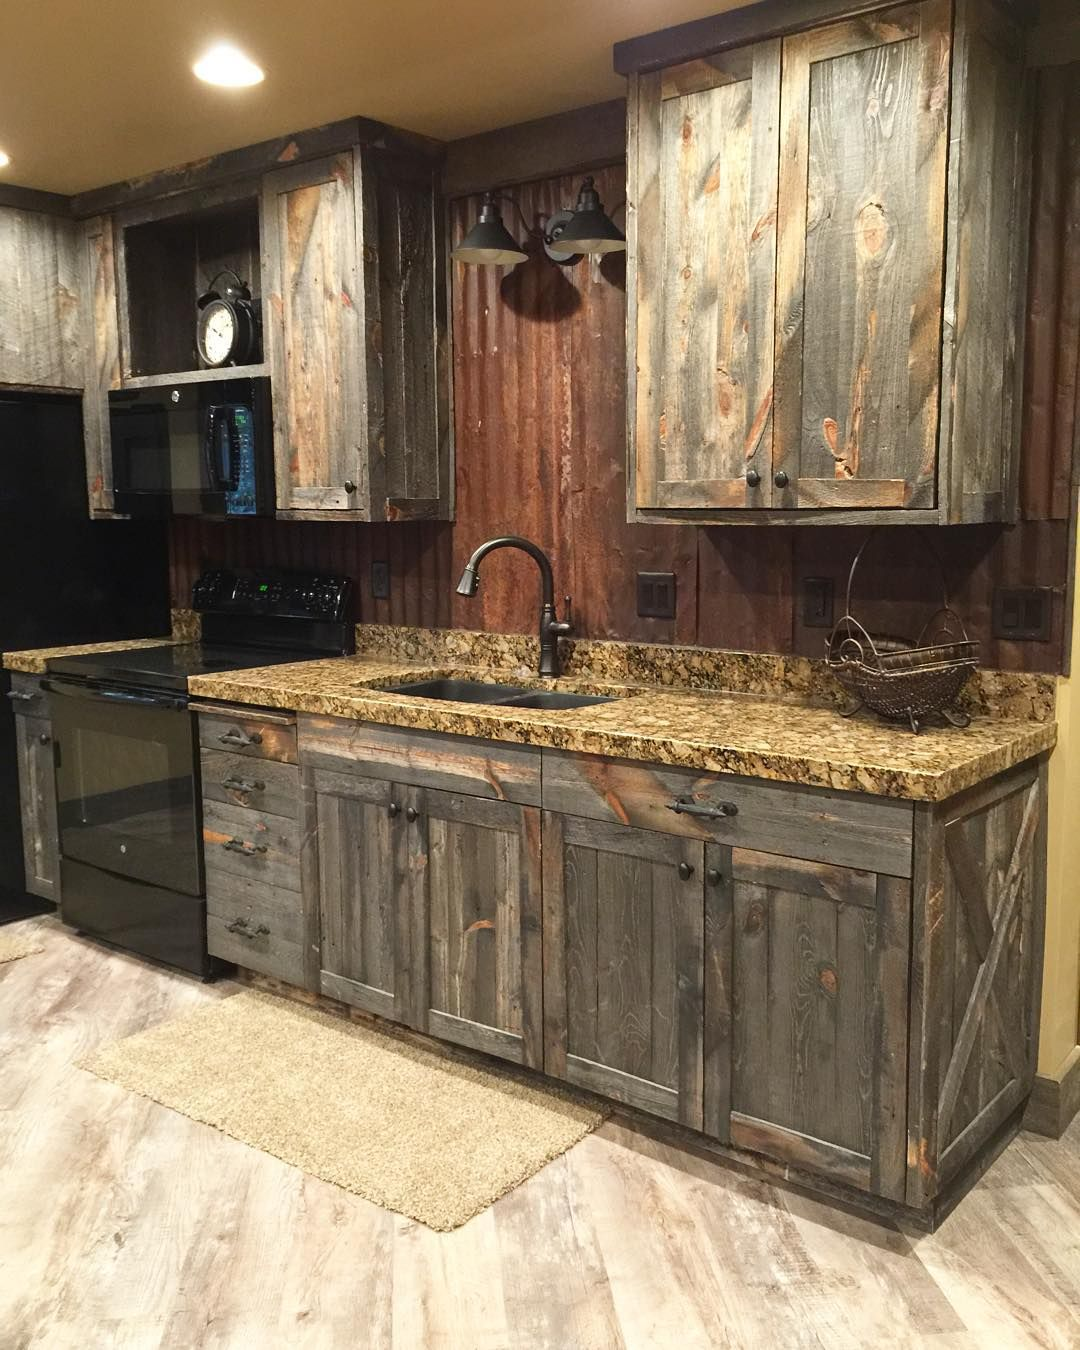 A Little Barnwood Kitchen Cabinets And Corrugated Steel Backsplash Love How Rustic And Homey It Is Cabininthewoods Diy Kitchen Cabinets